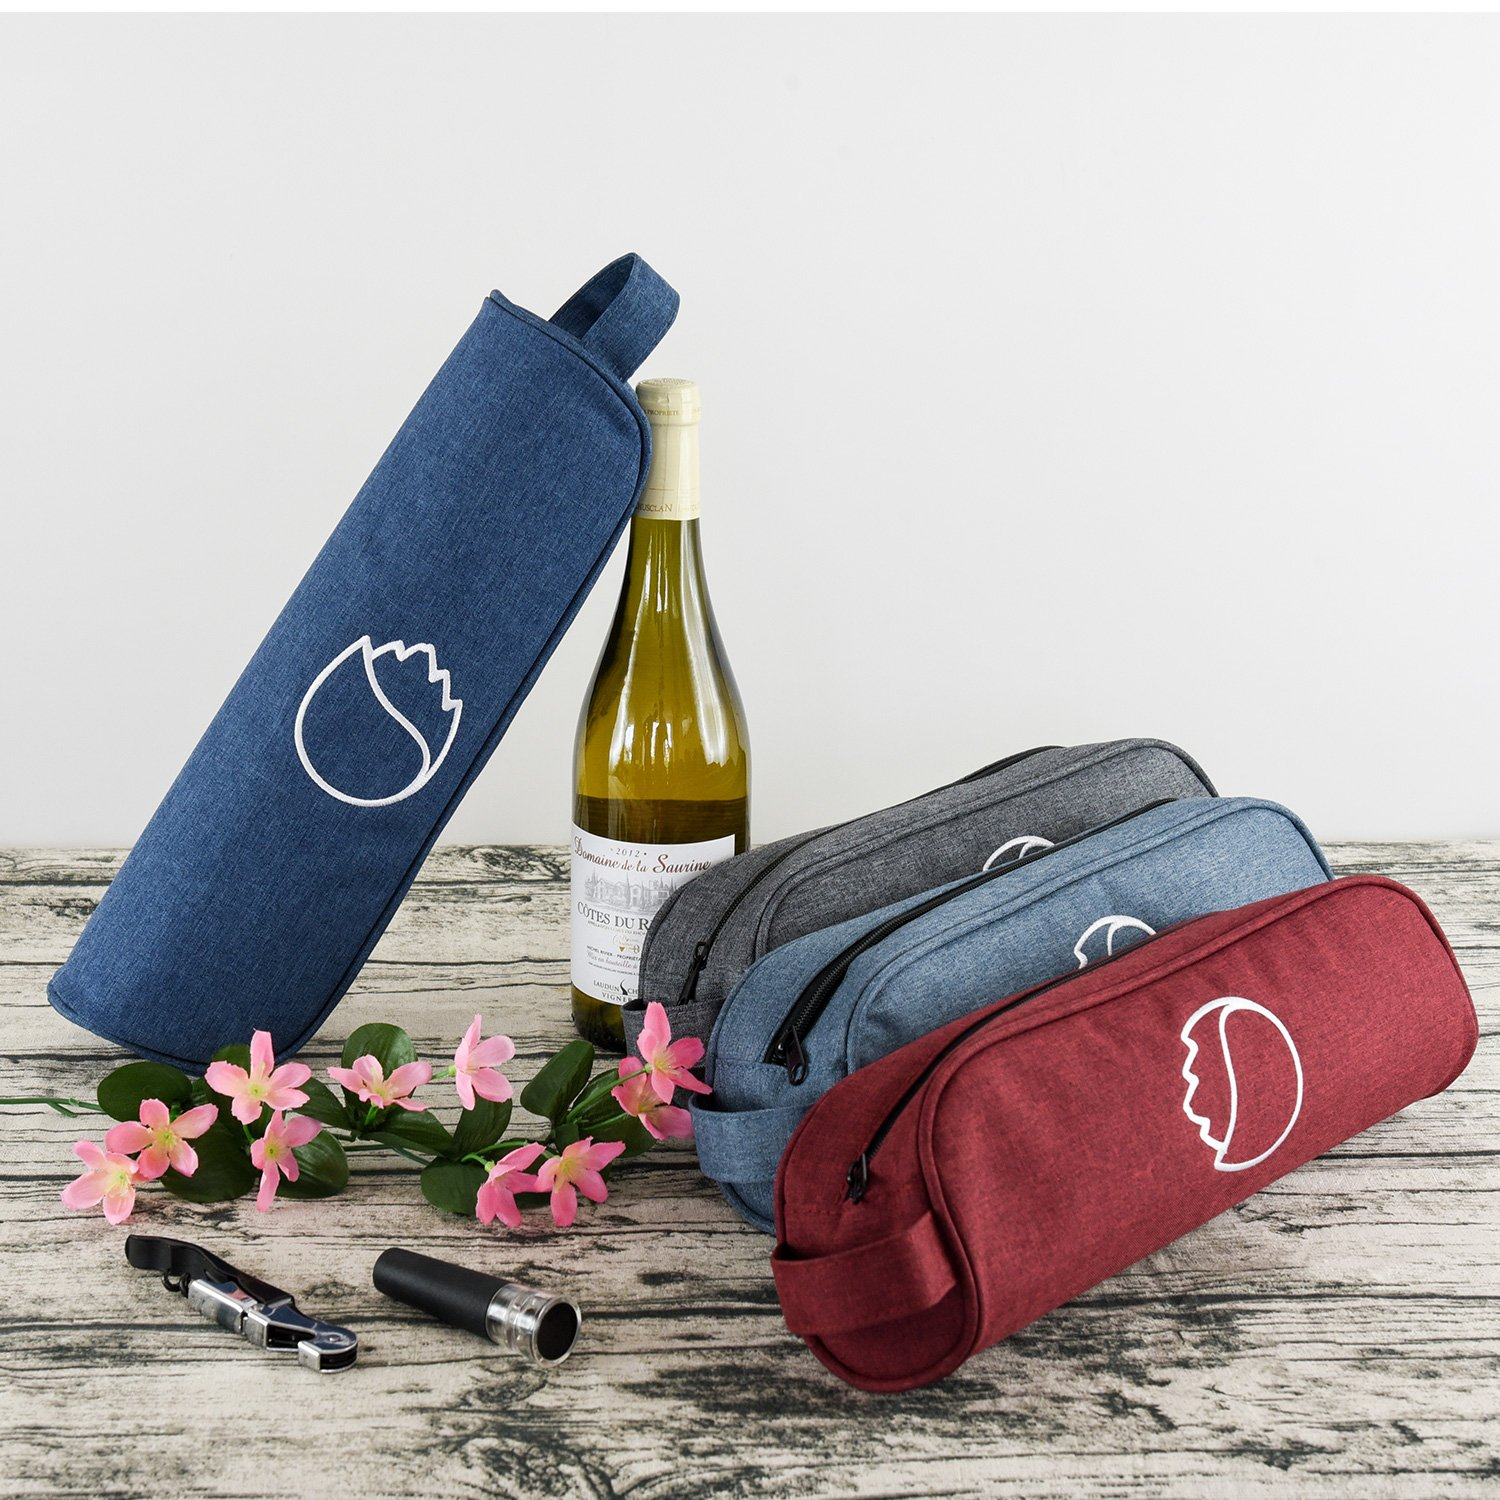 Freshore Insulated Single Wine Tote Bag Carriers For Cooler Restaurant As Gift - Firmly Store Corkscrew (Gray Blue) by Freshore (Image #7)